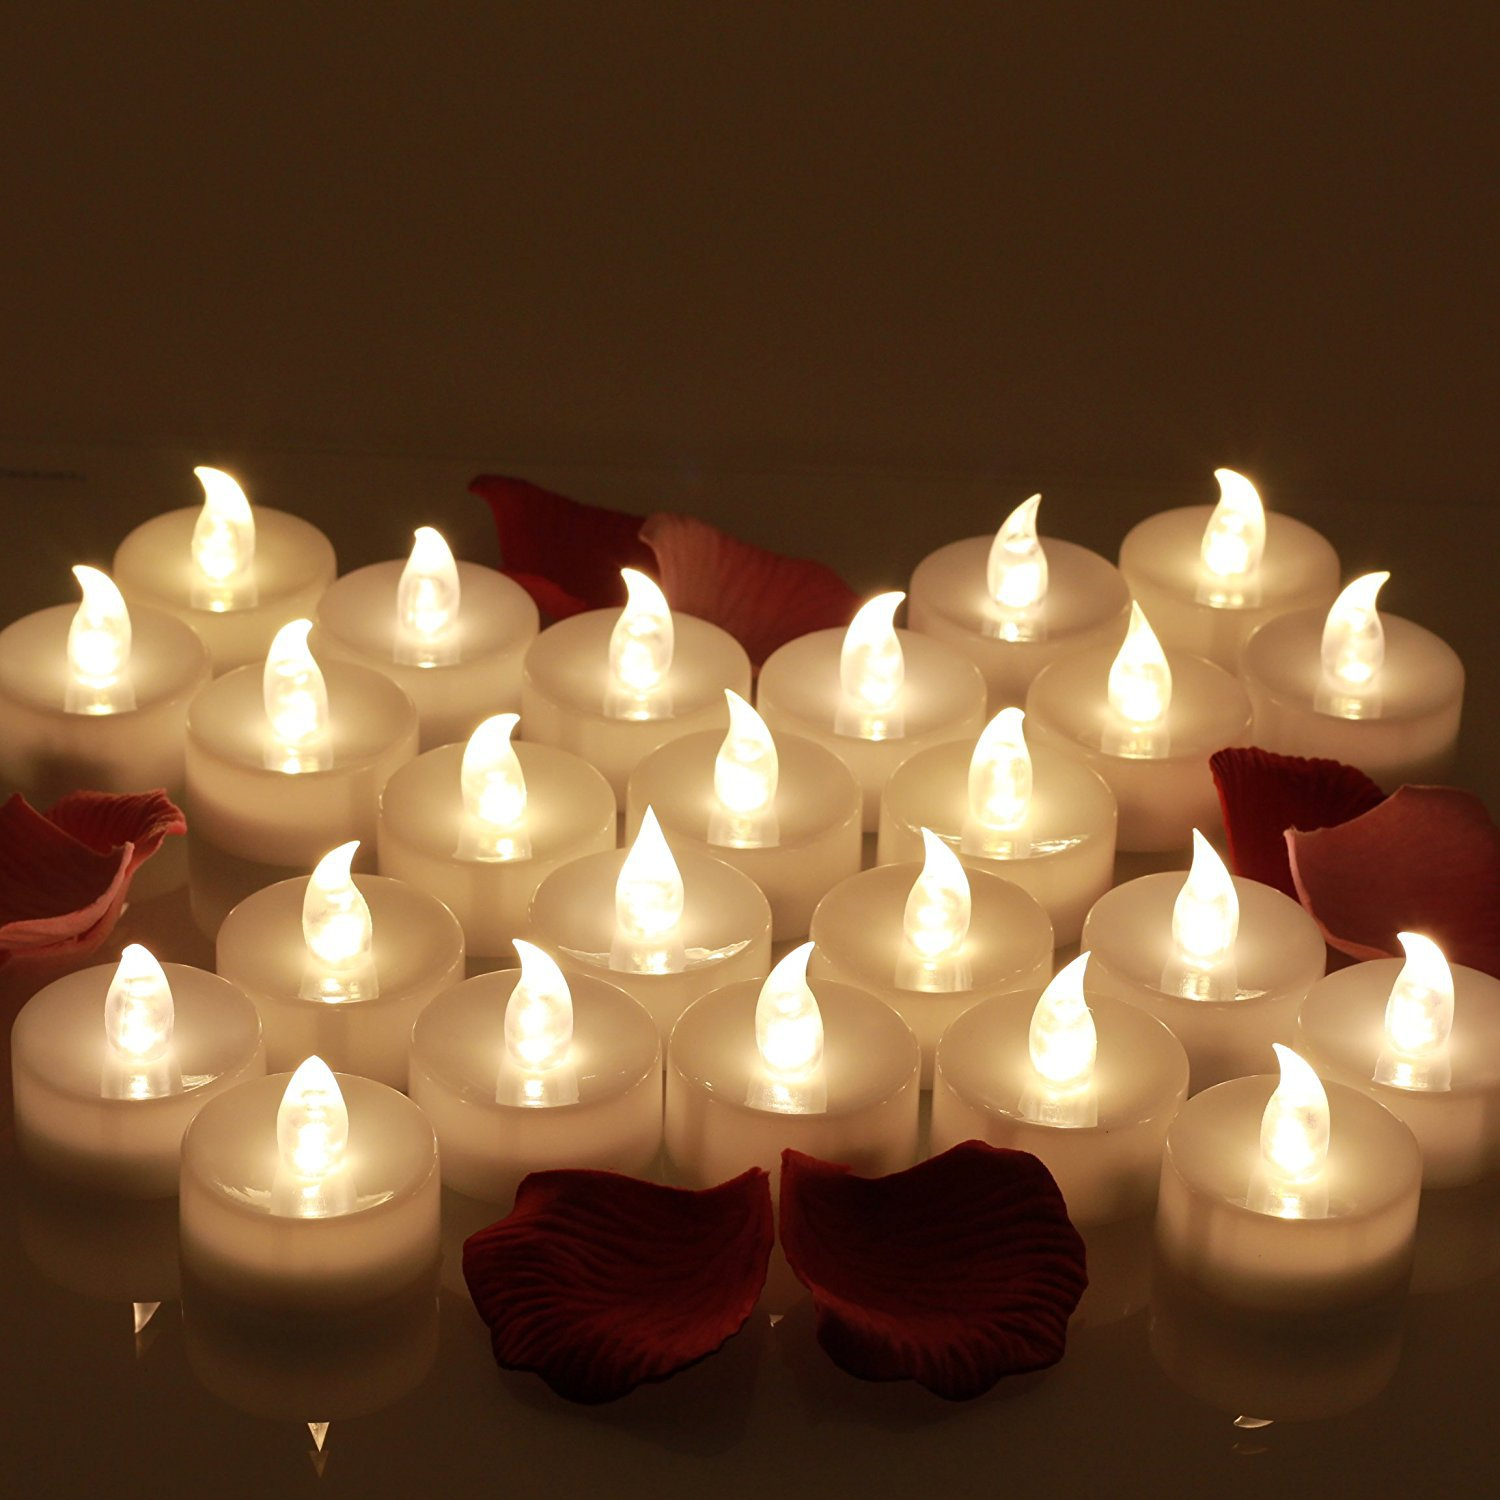 Realistic Bright Flameless Led Tea Light Candles 12 Pcs/pcsk Flickering Flameless Tea Light Battery Operated Candles For Party An Enriches And Nutrient For The Liver And Kidney Home Decor Home & Garden